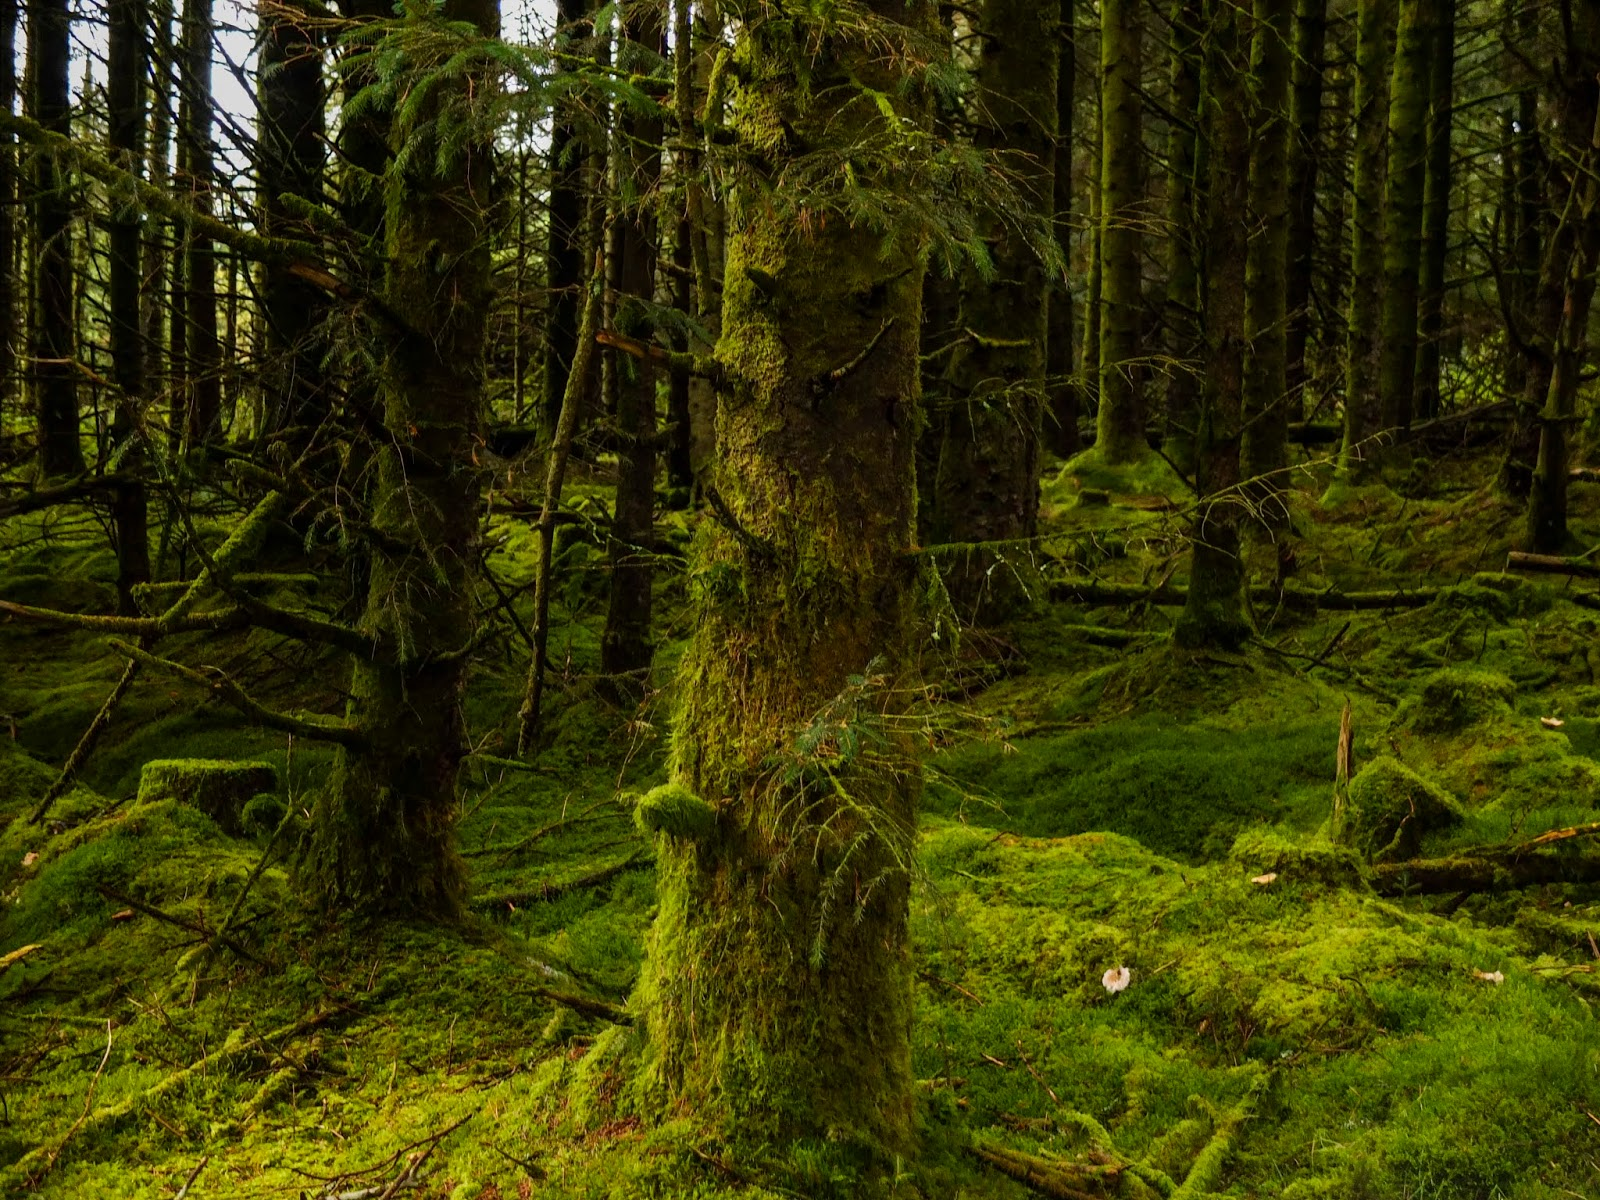 Mossy tree trunks in an ancient and untouched forest.